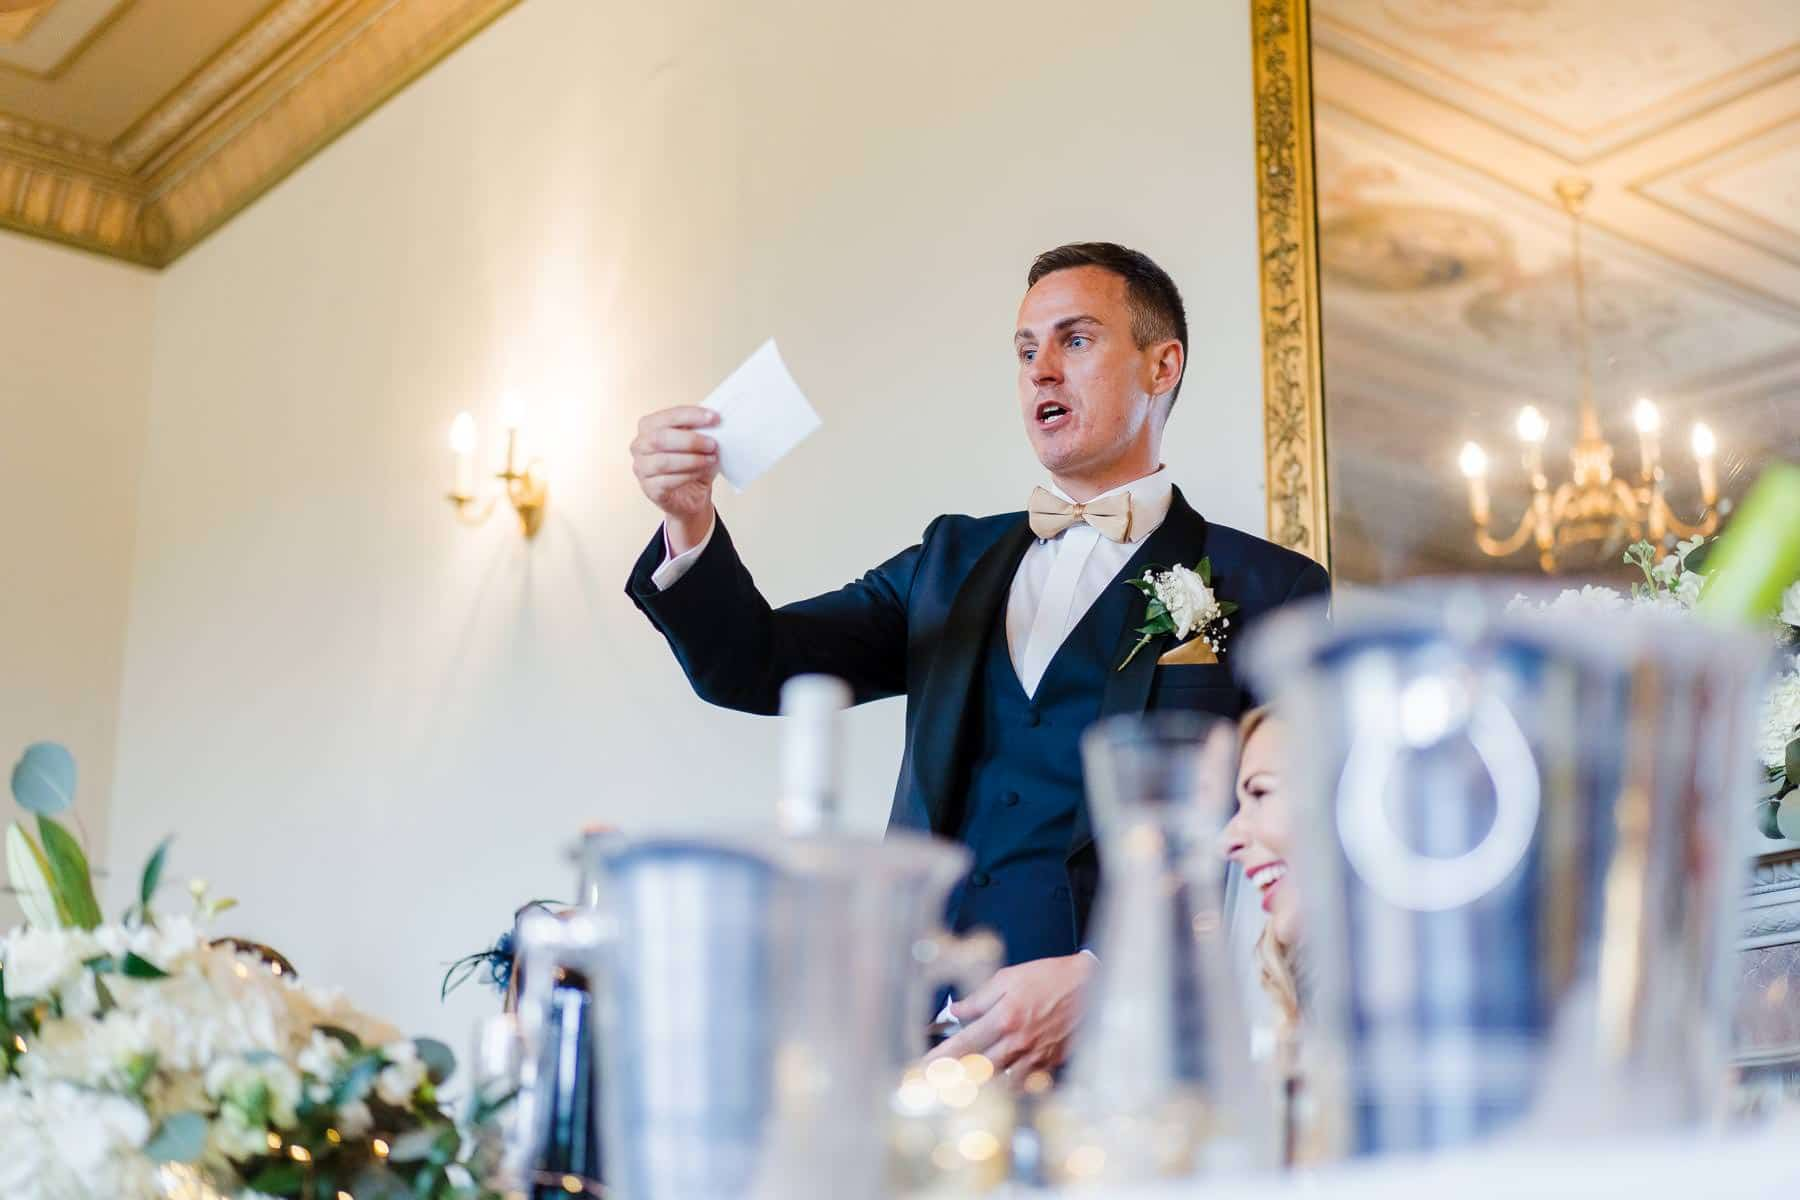 Wedding photography of the groom delivering his speech of delapre guests